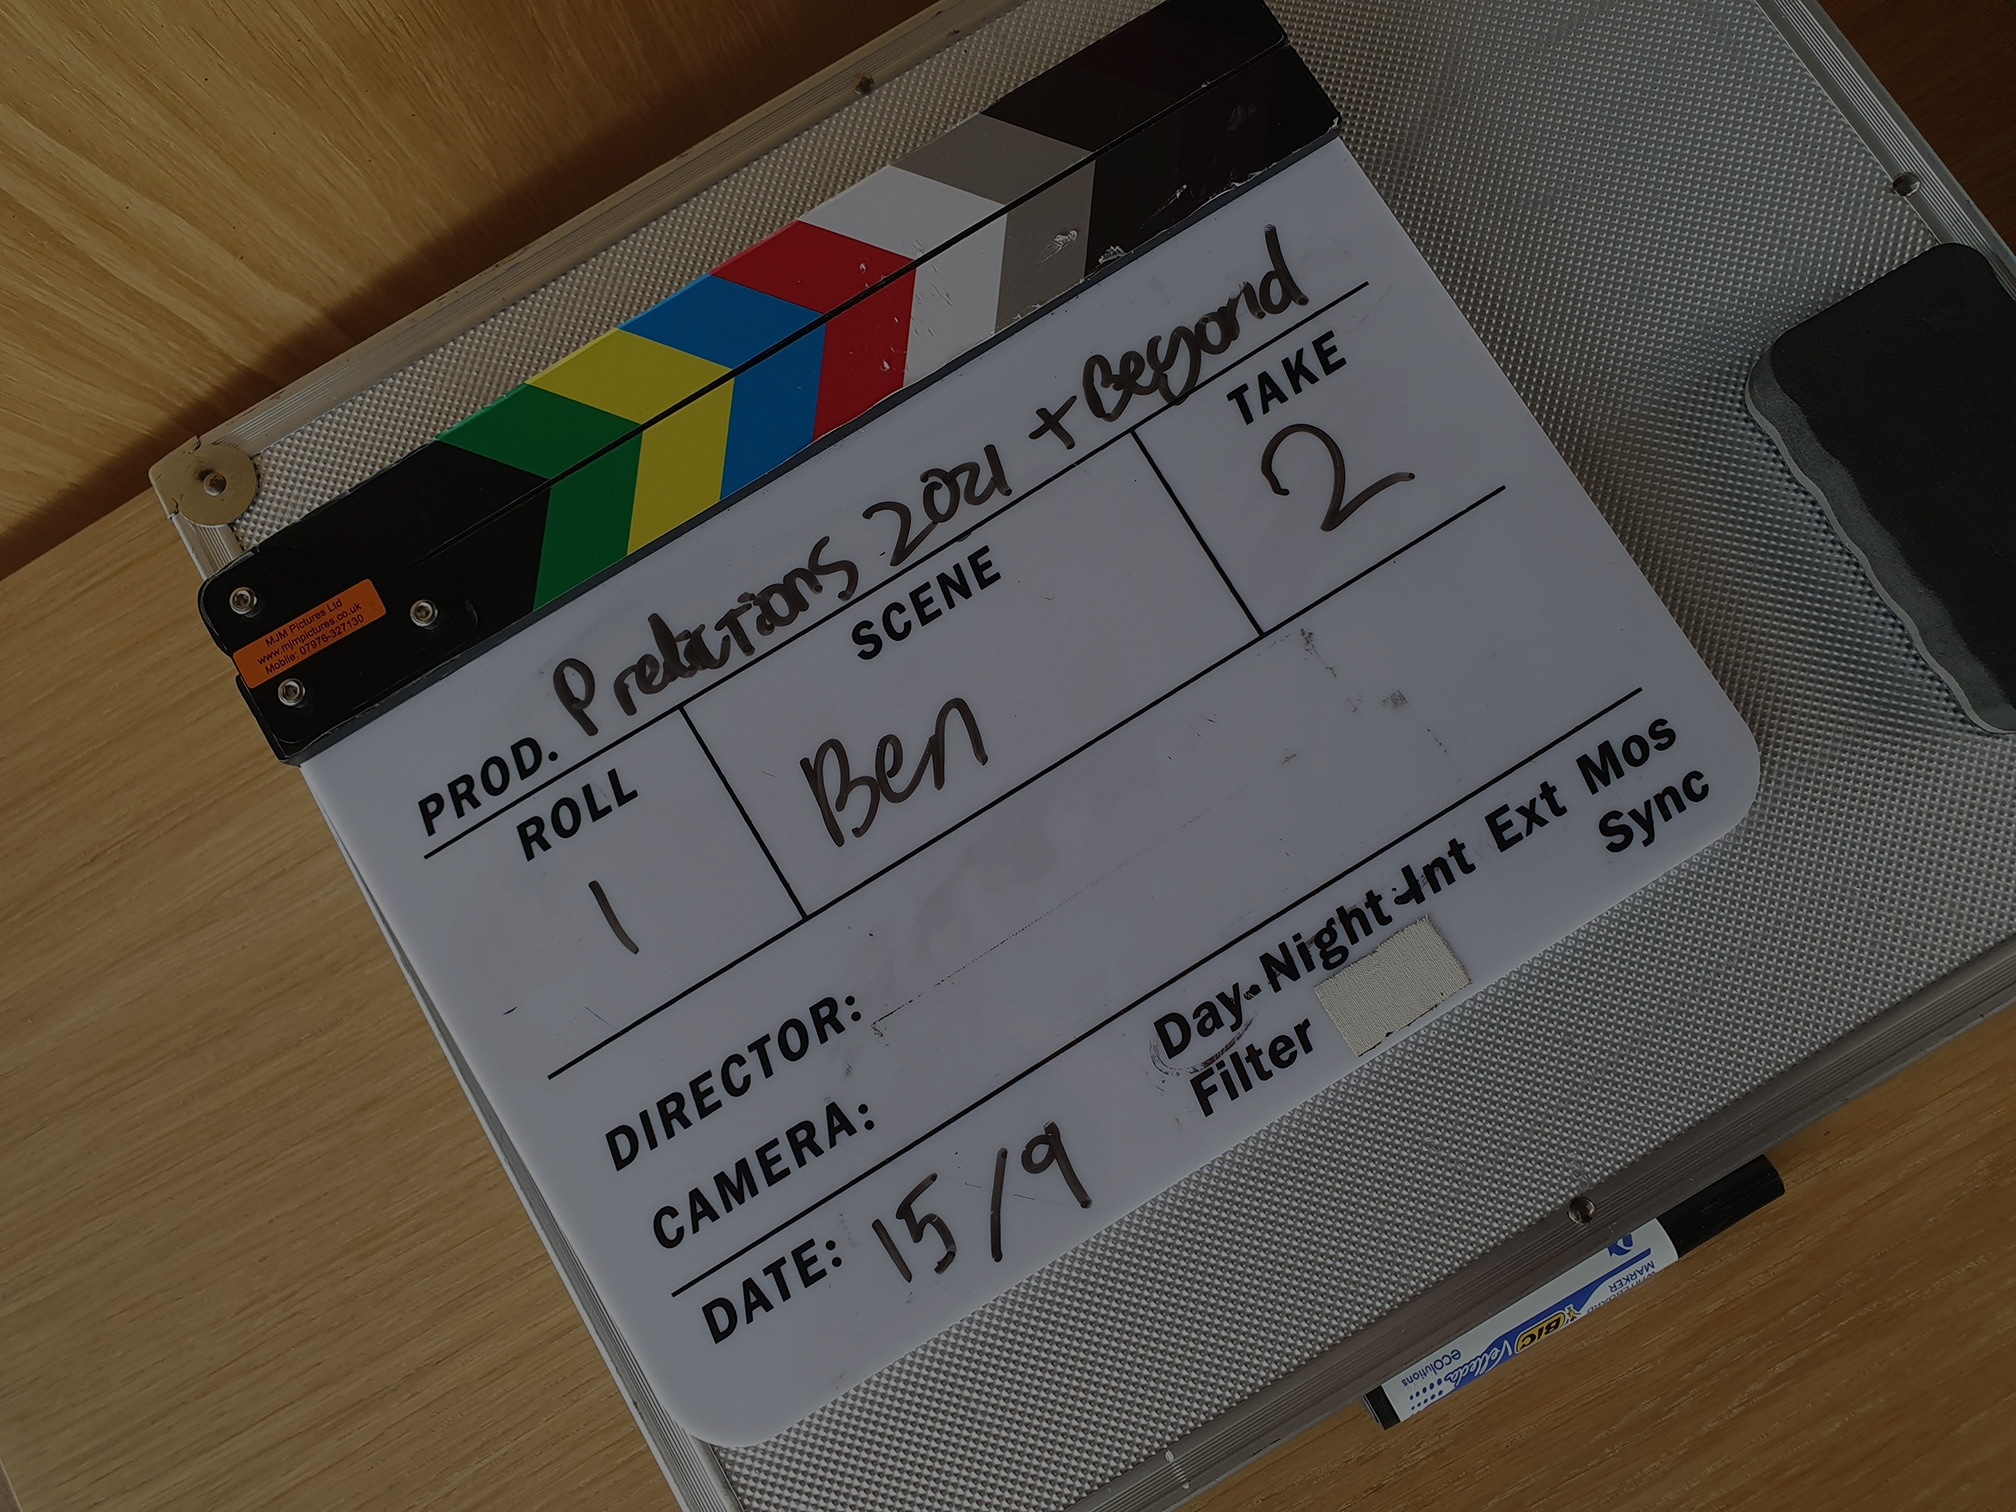 a clapperboard on a table